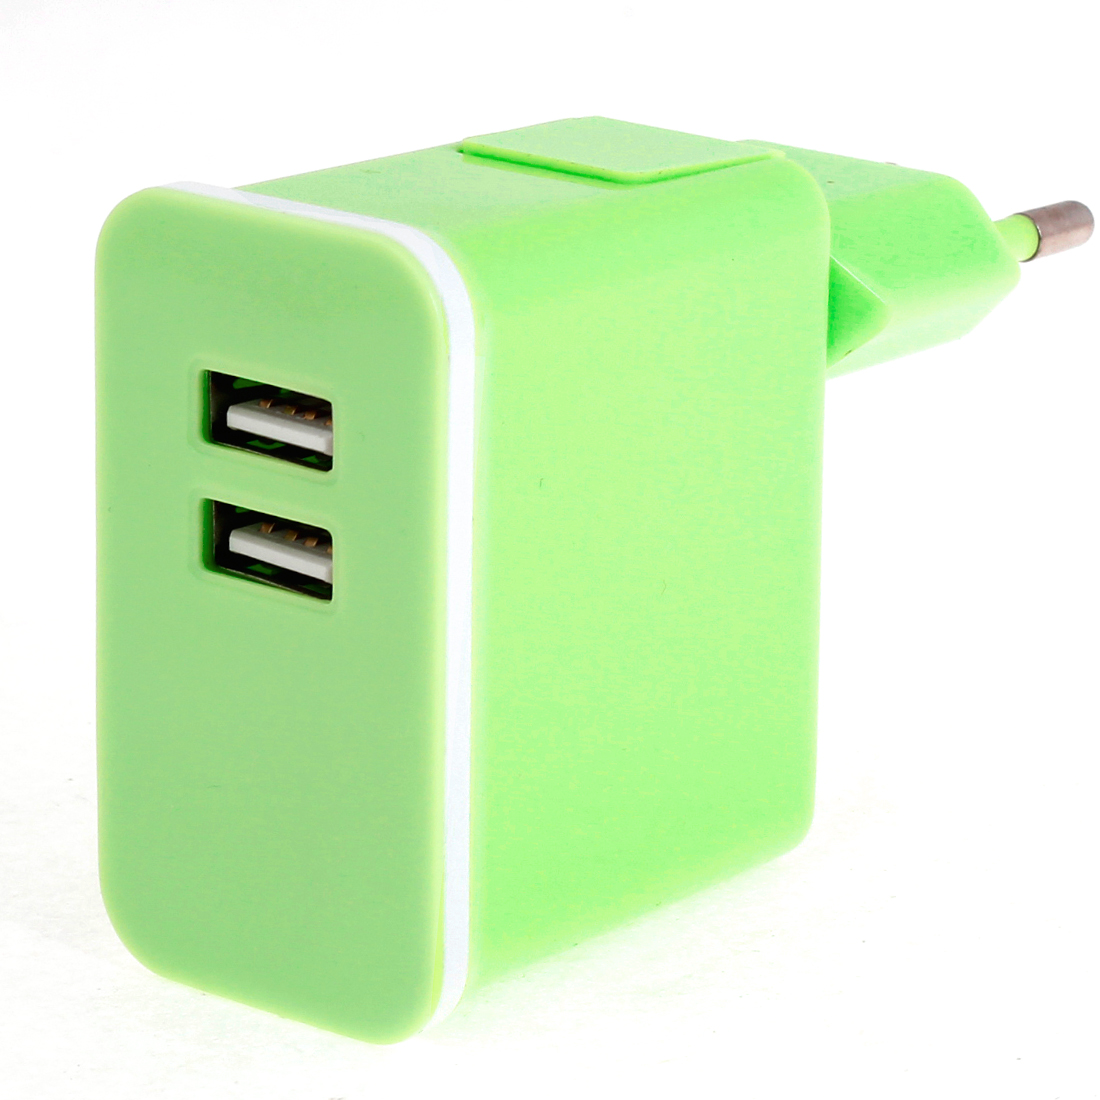 Green Plastic Shell 2 USB Ports AC Power Adapter Travel Charger EU Plug